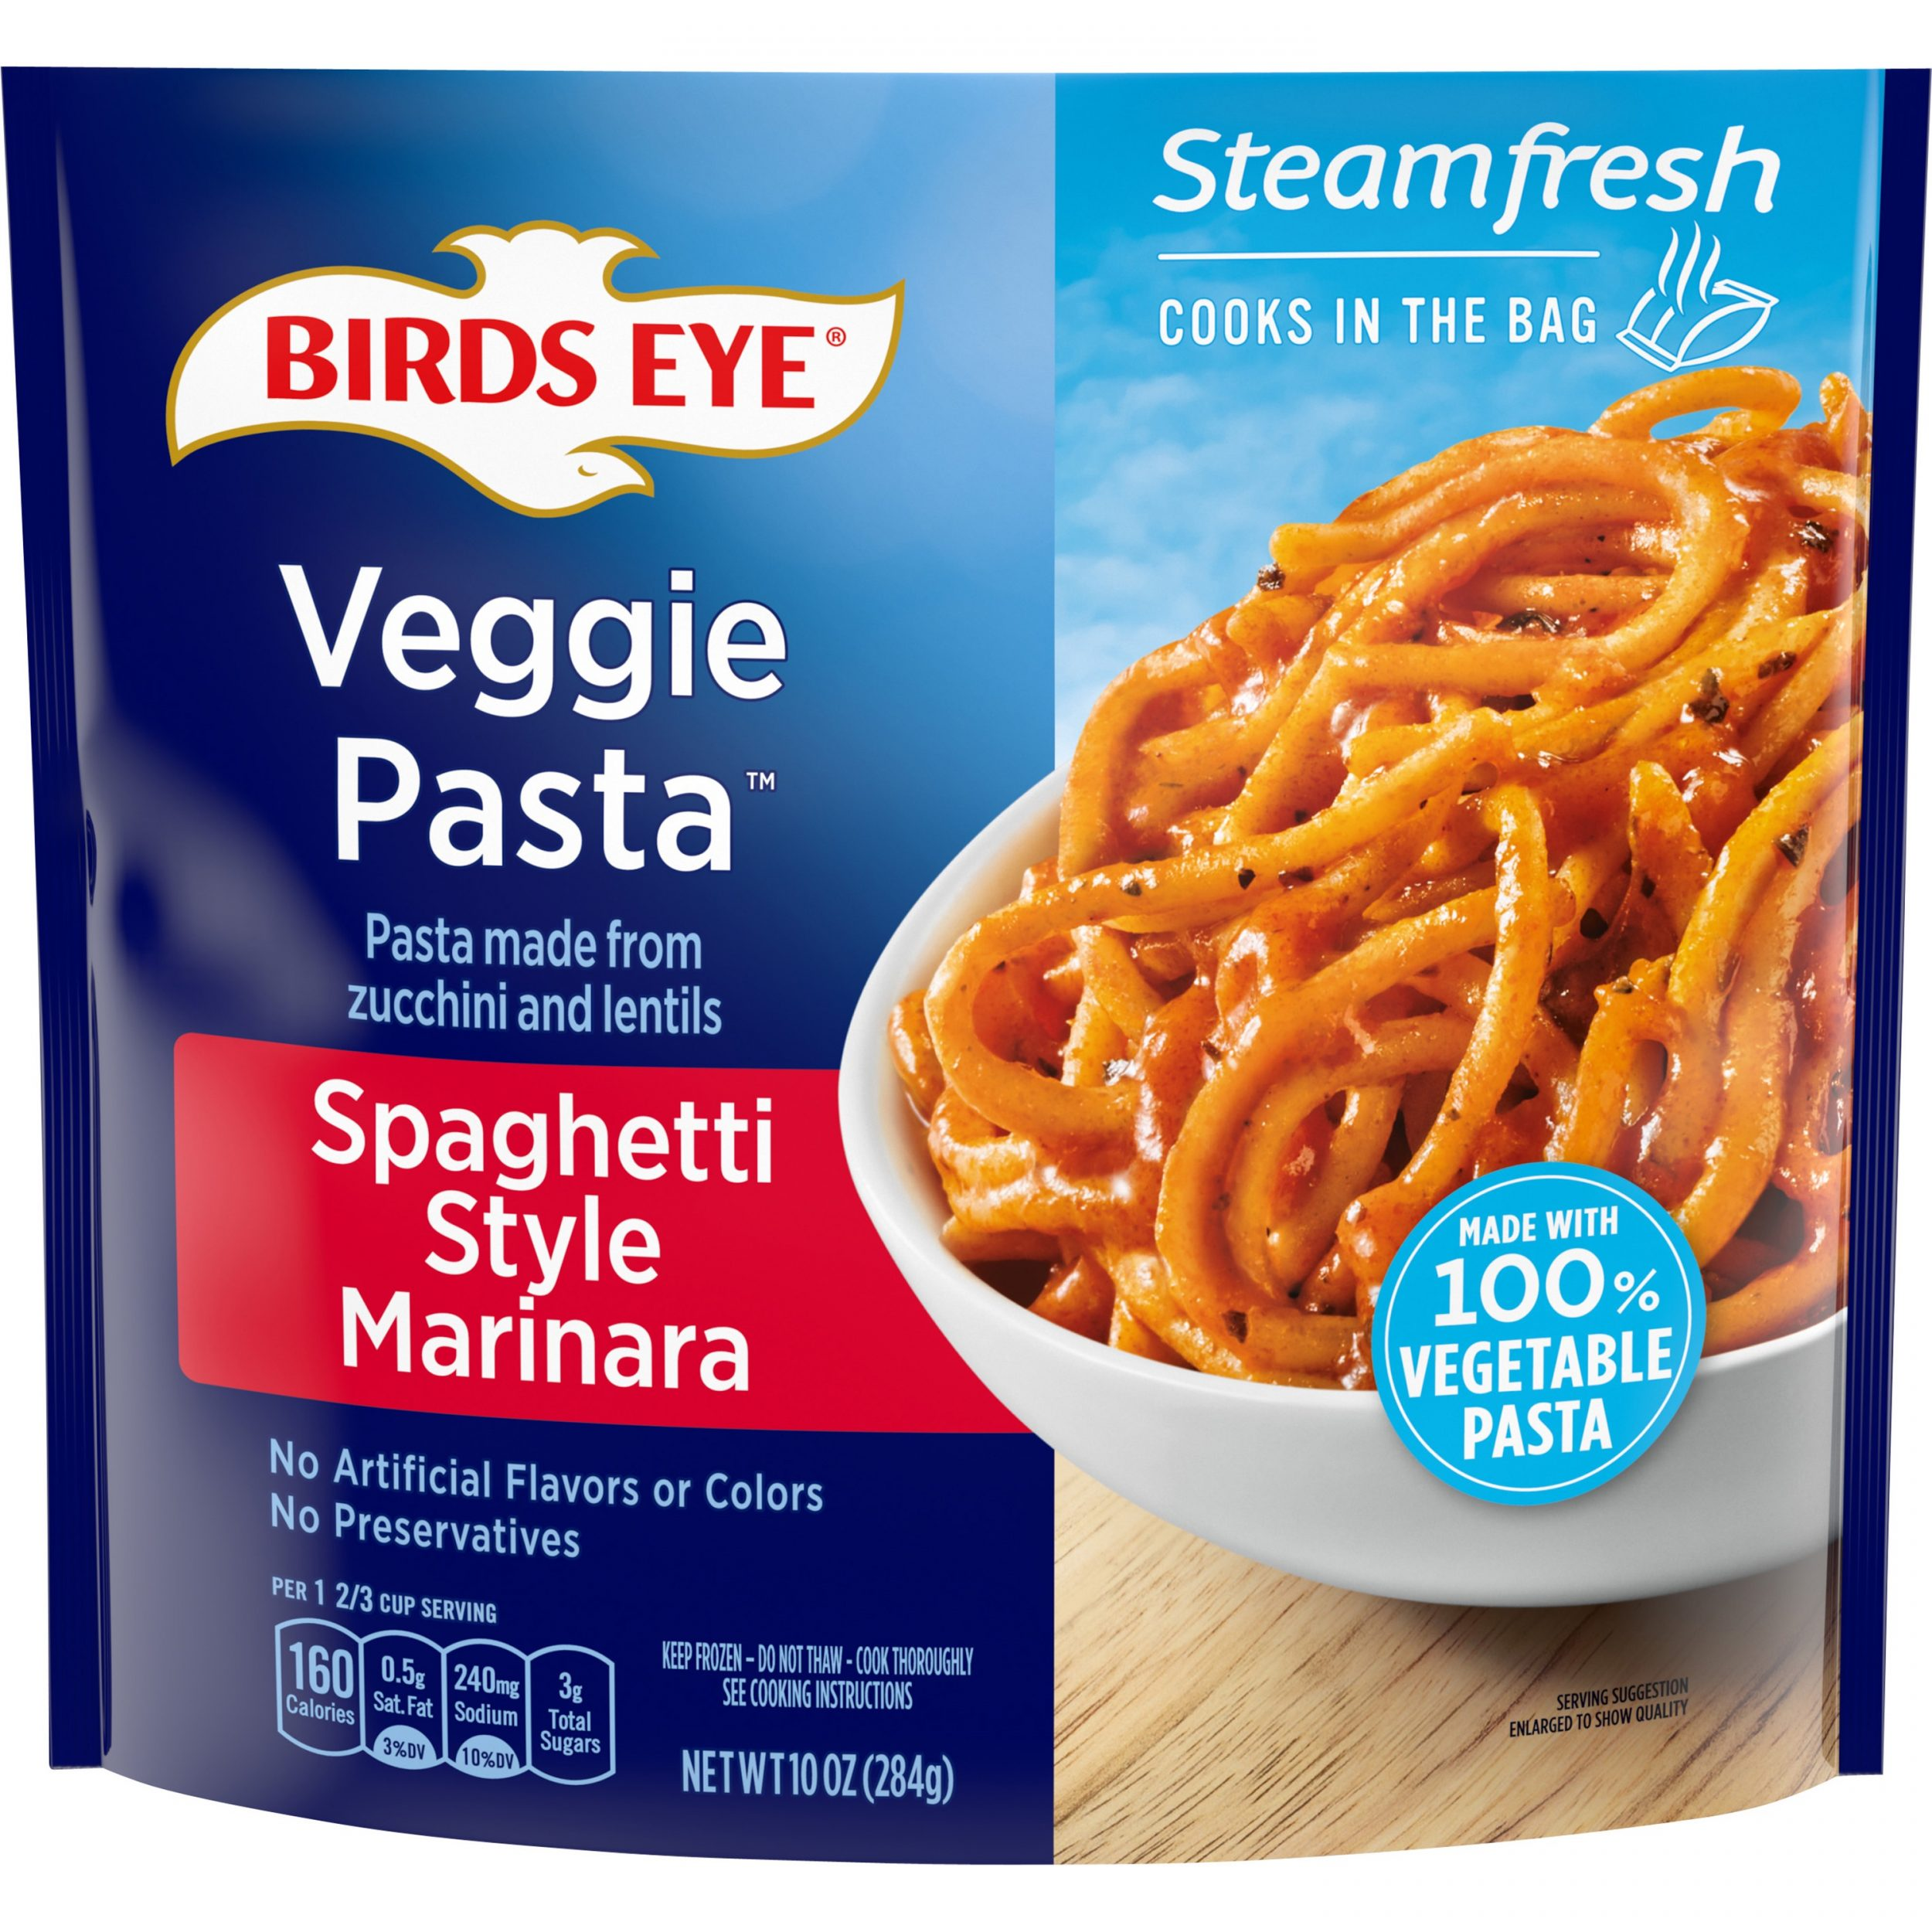 Birds Eye Steamfresh Veggie Made™ Spaghetti Style Marinara